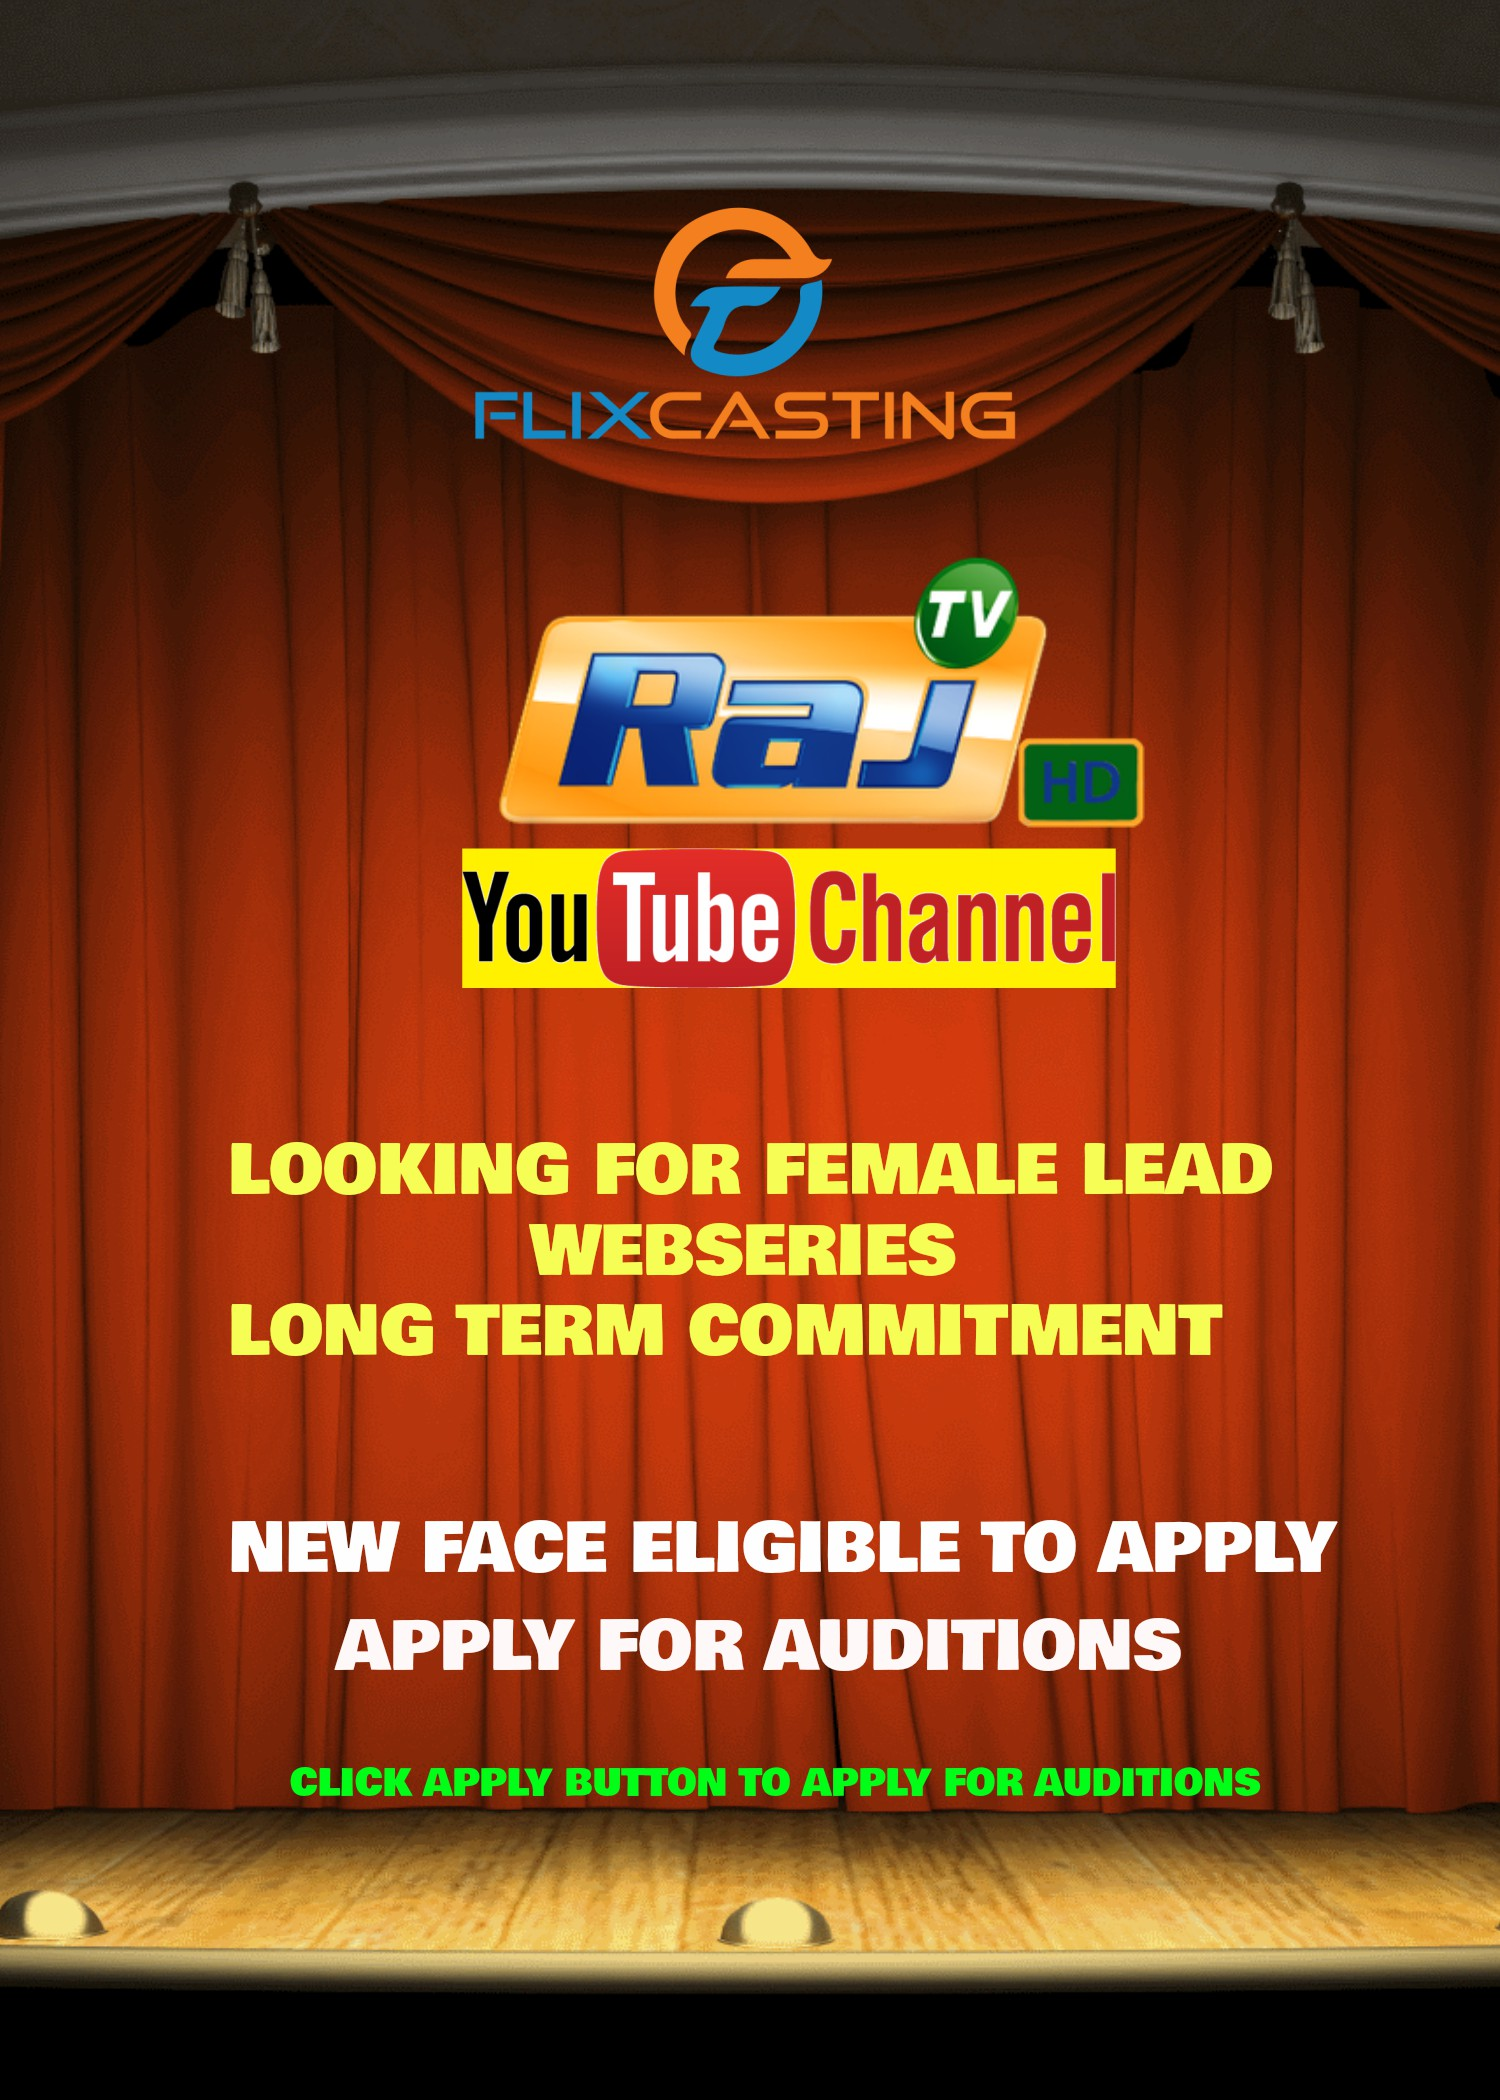 RAJ TV Youtube channel - Looking For Female Lead for